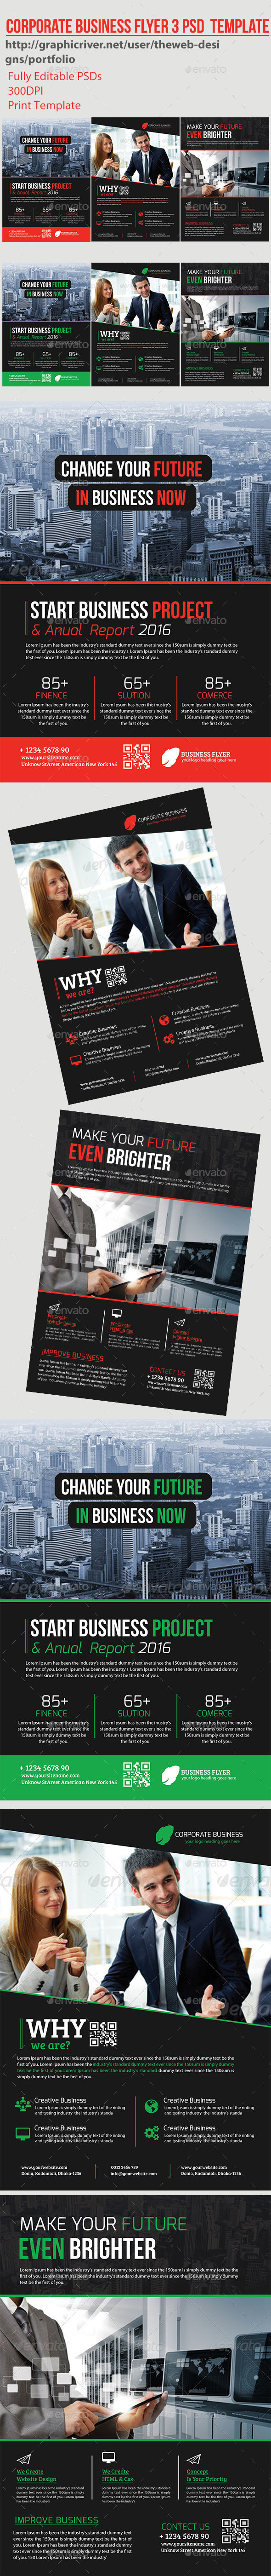 Corporate Business Flyers 3 Psd Template - Flyers Print Templates